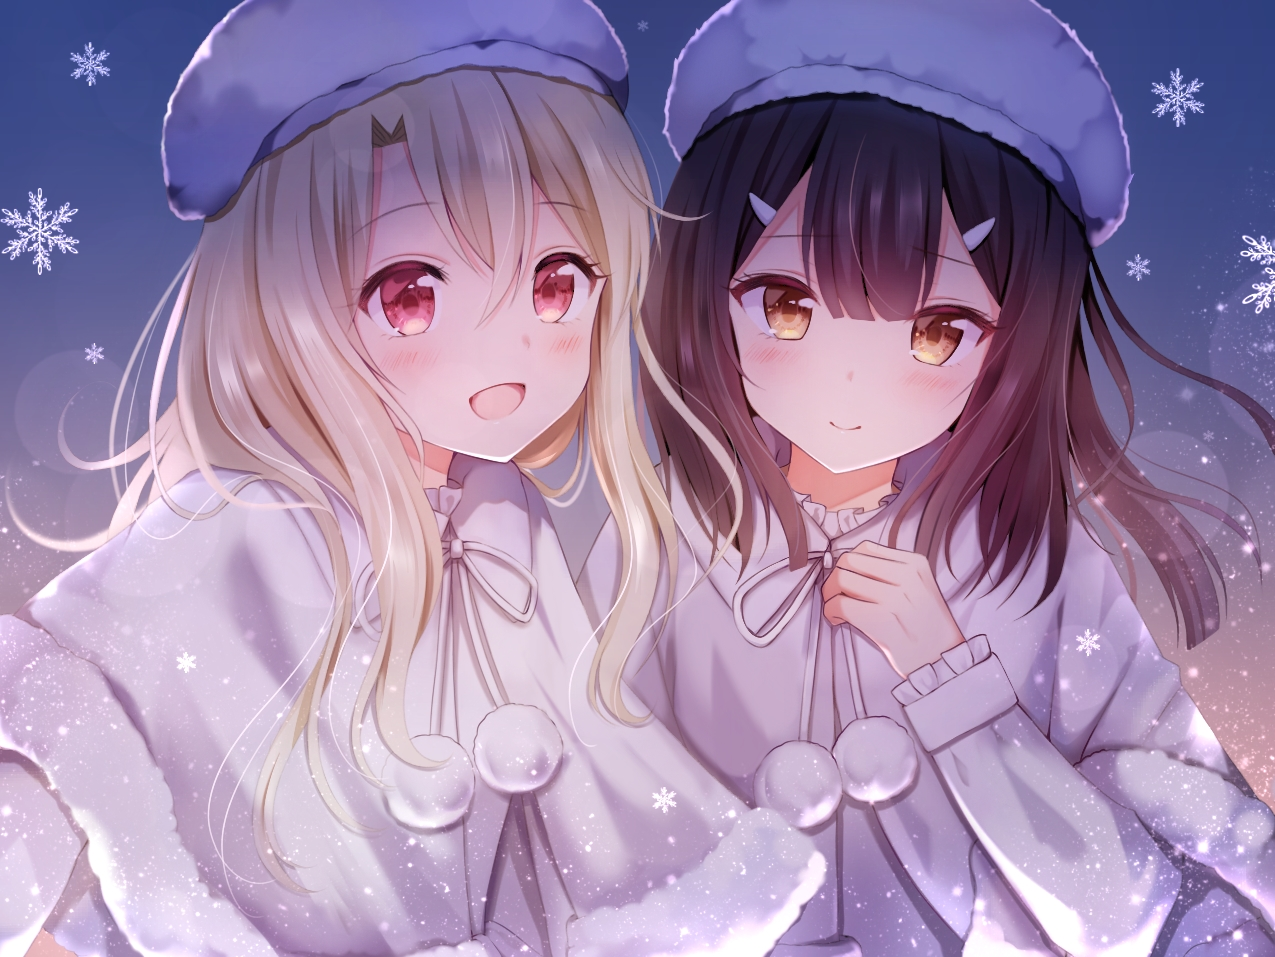 2girls black_hair blonde_hair blush cape fate/kaleid_liner_prisma_illya fate_(series) gradient hat illyasviel_von_einzbern long_hair miyu_edelfelt nasii red_eyes snow yellow_eyes